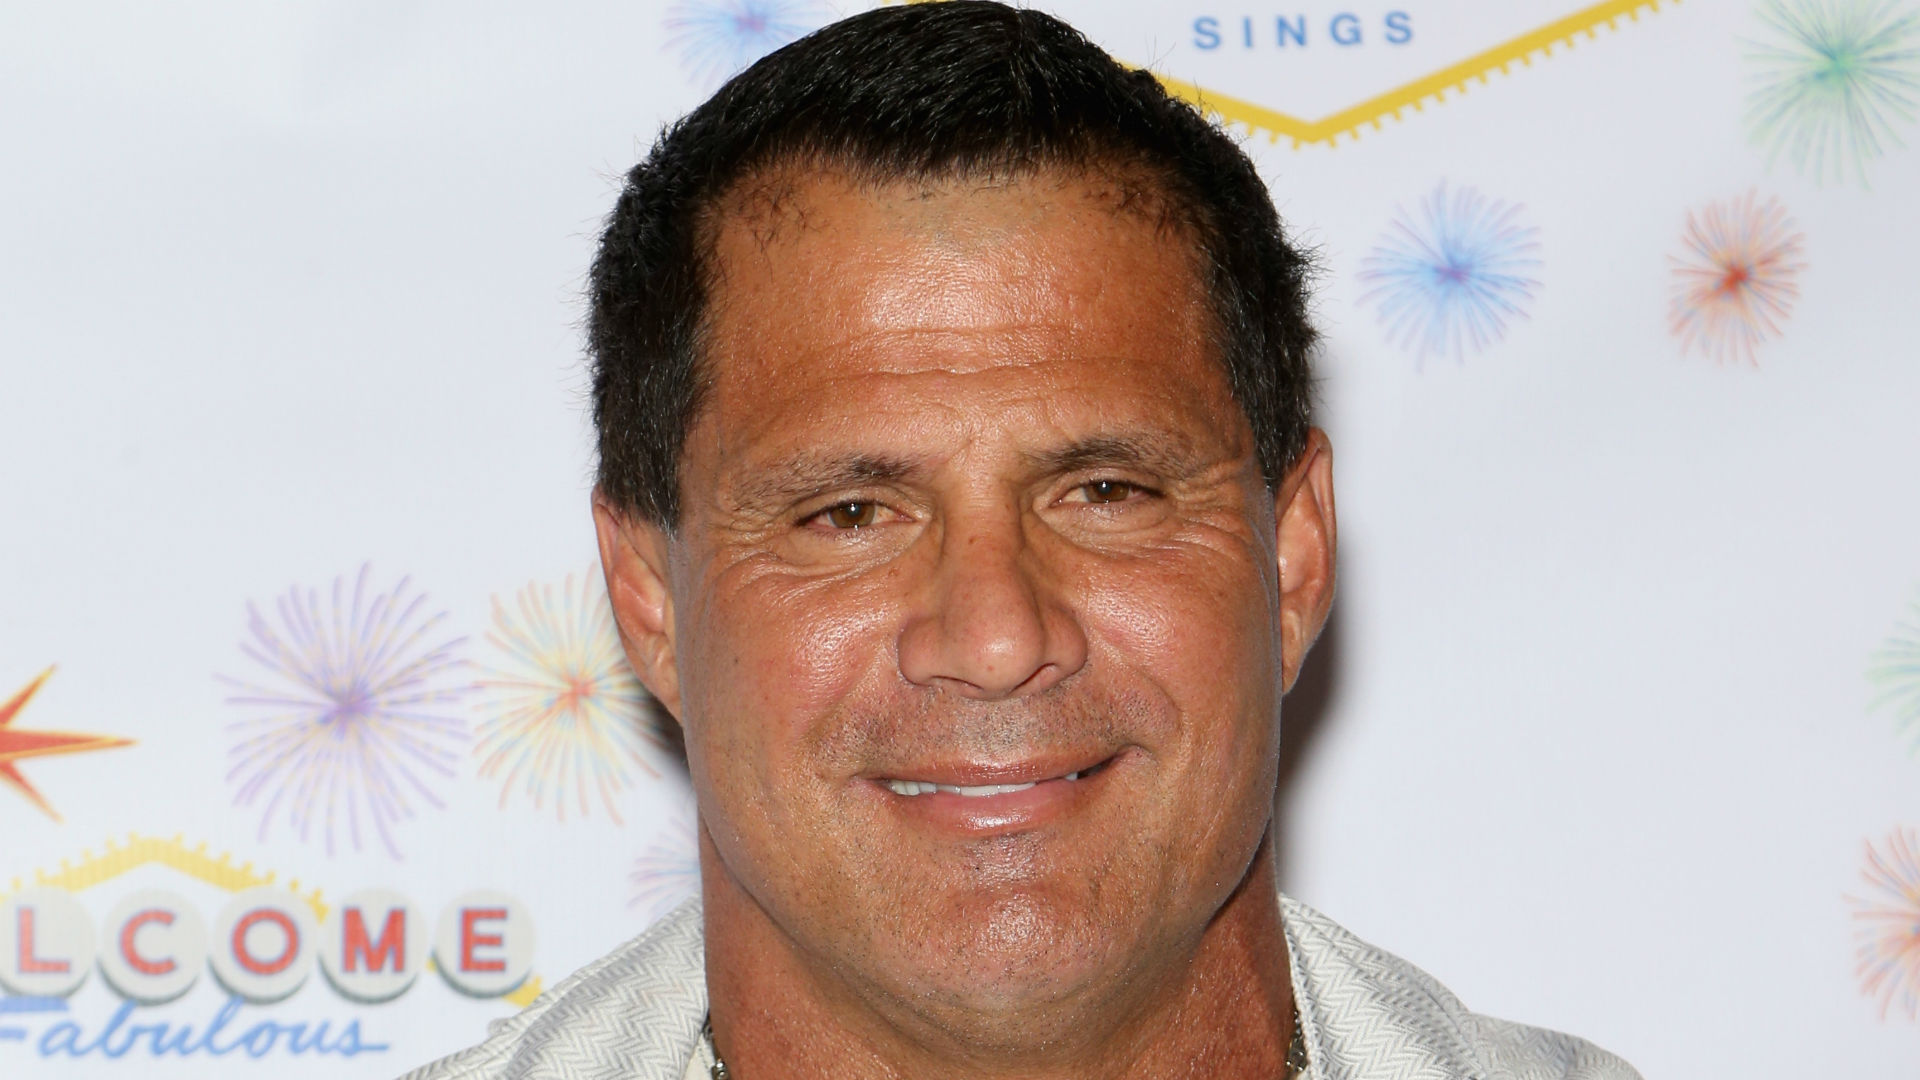 Tweets on sexual harassment cost Jose Canseco broadcasting job